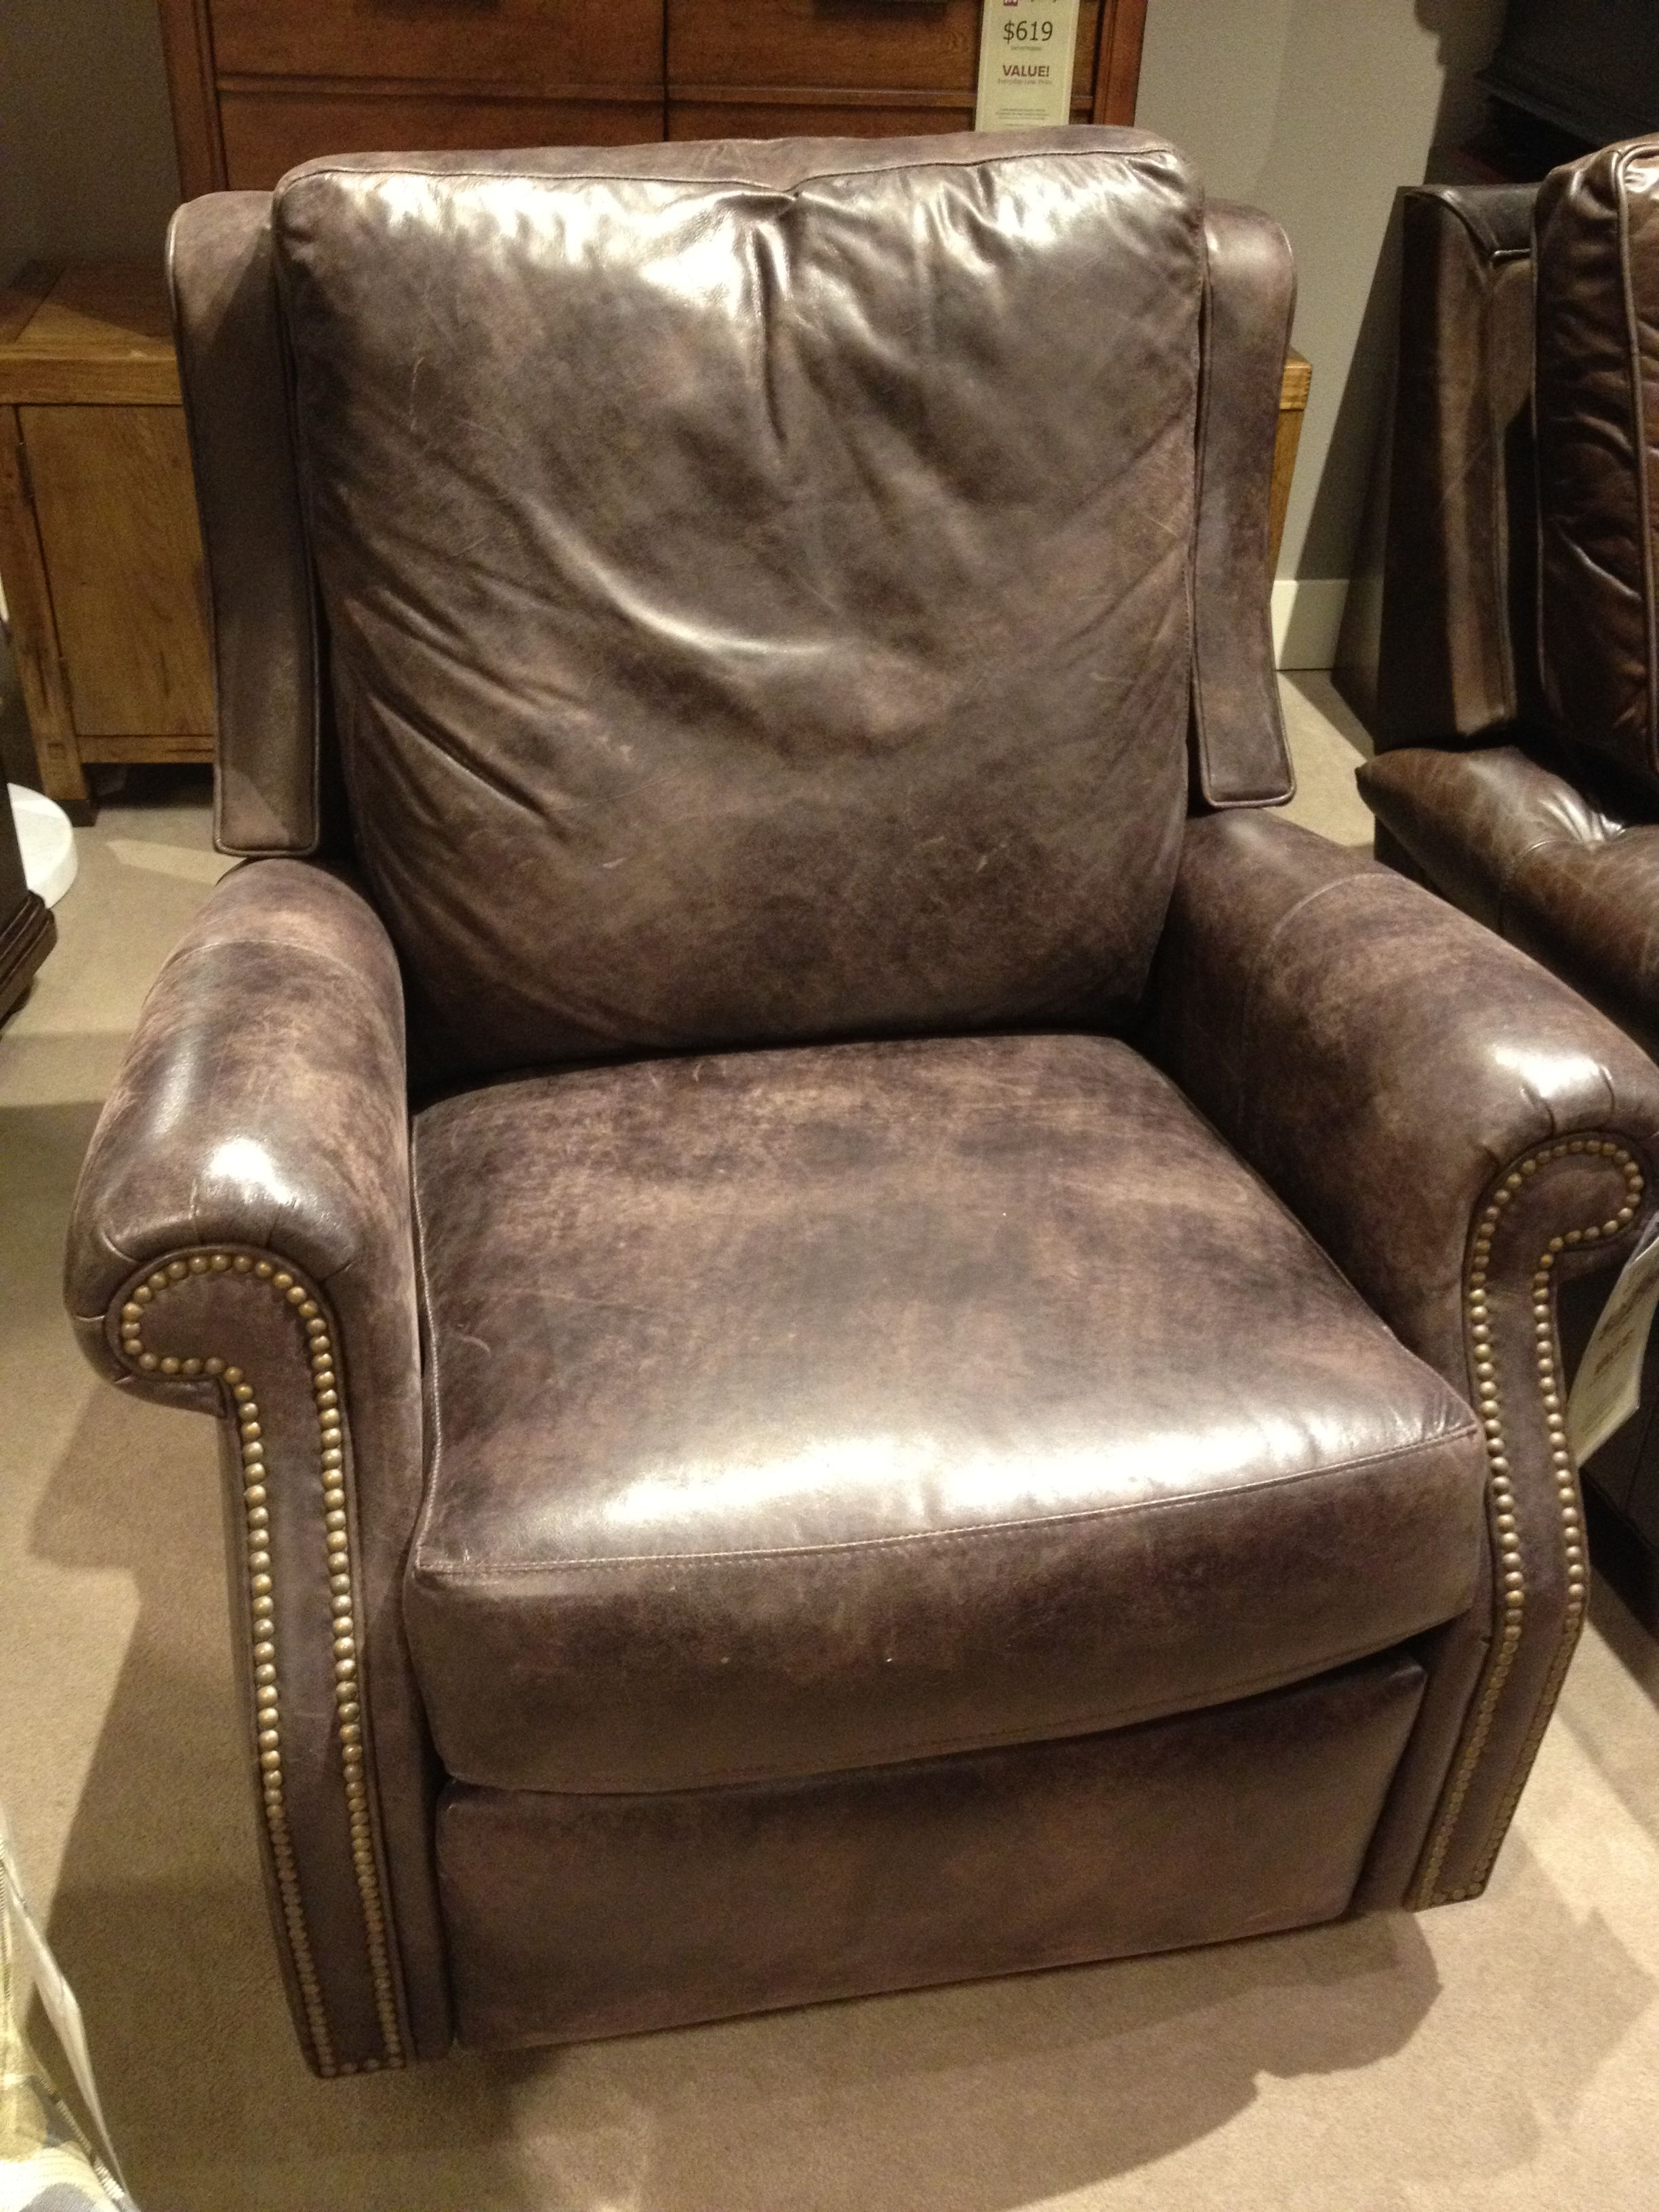 For Your Hubby Leather Swivel Rocker Recliner That Friends Liked In The